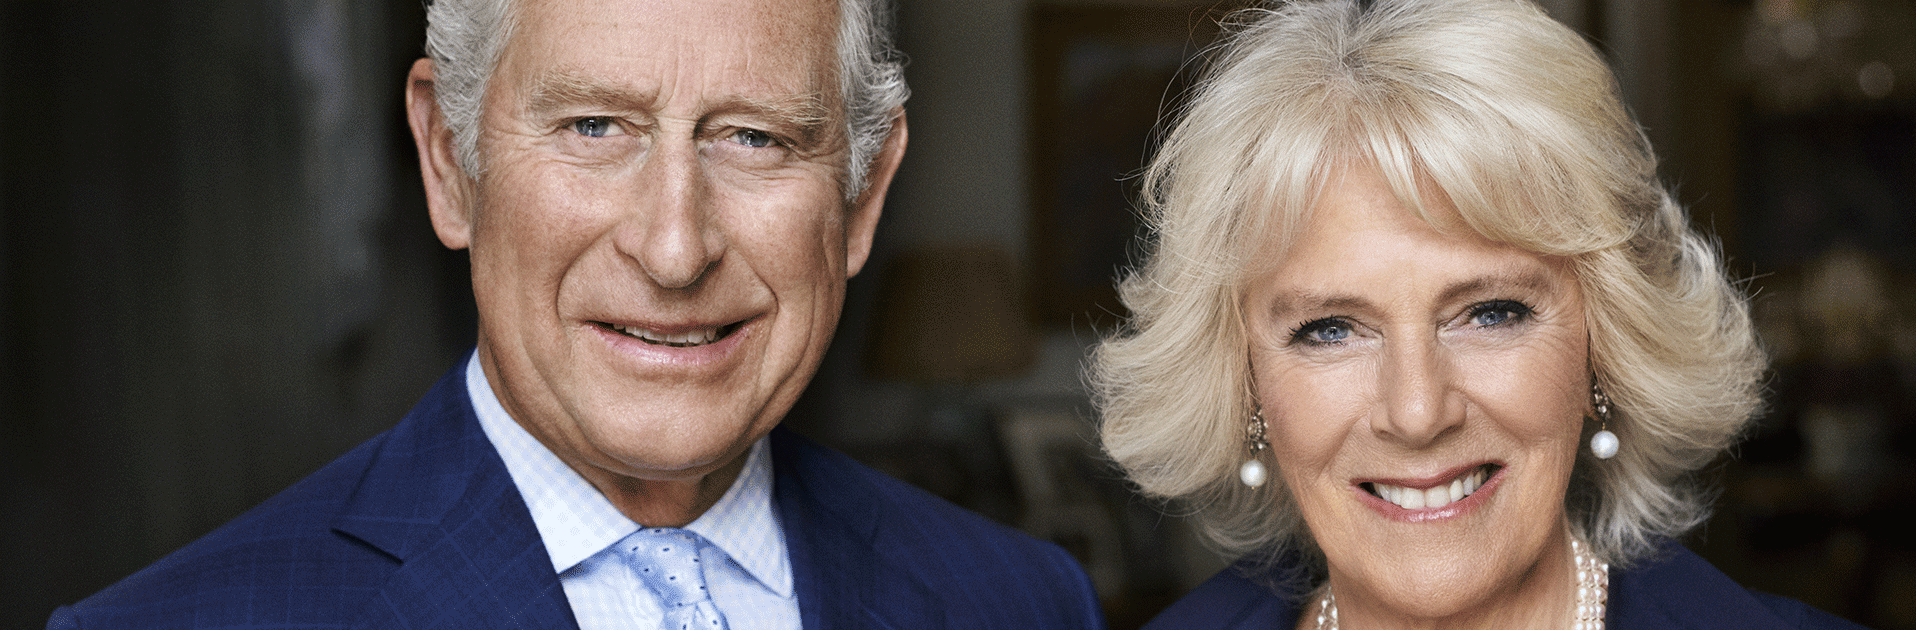 Camilla, Her Royal Highness The Duchess of Cornwall